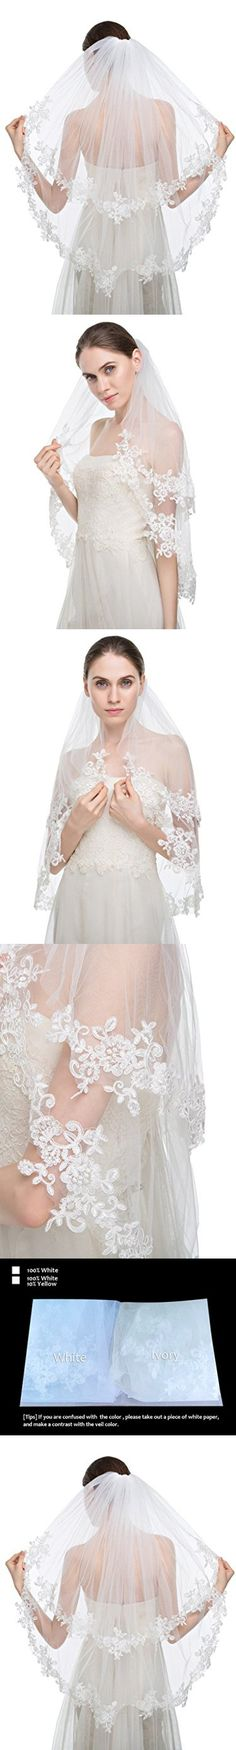 Edith qi Elegant Wedding Veil 2T Two-tier Elbow Veils Lace Applique Edge with Comb